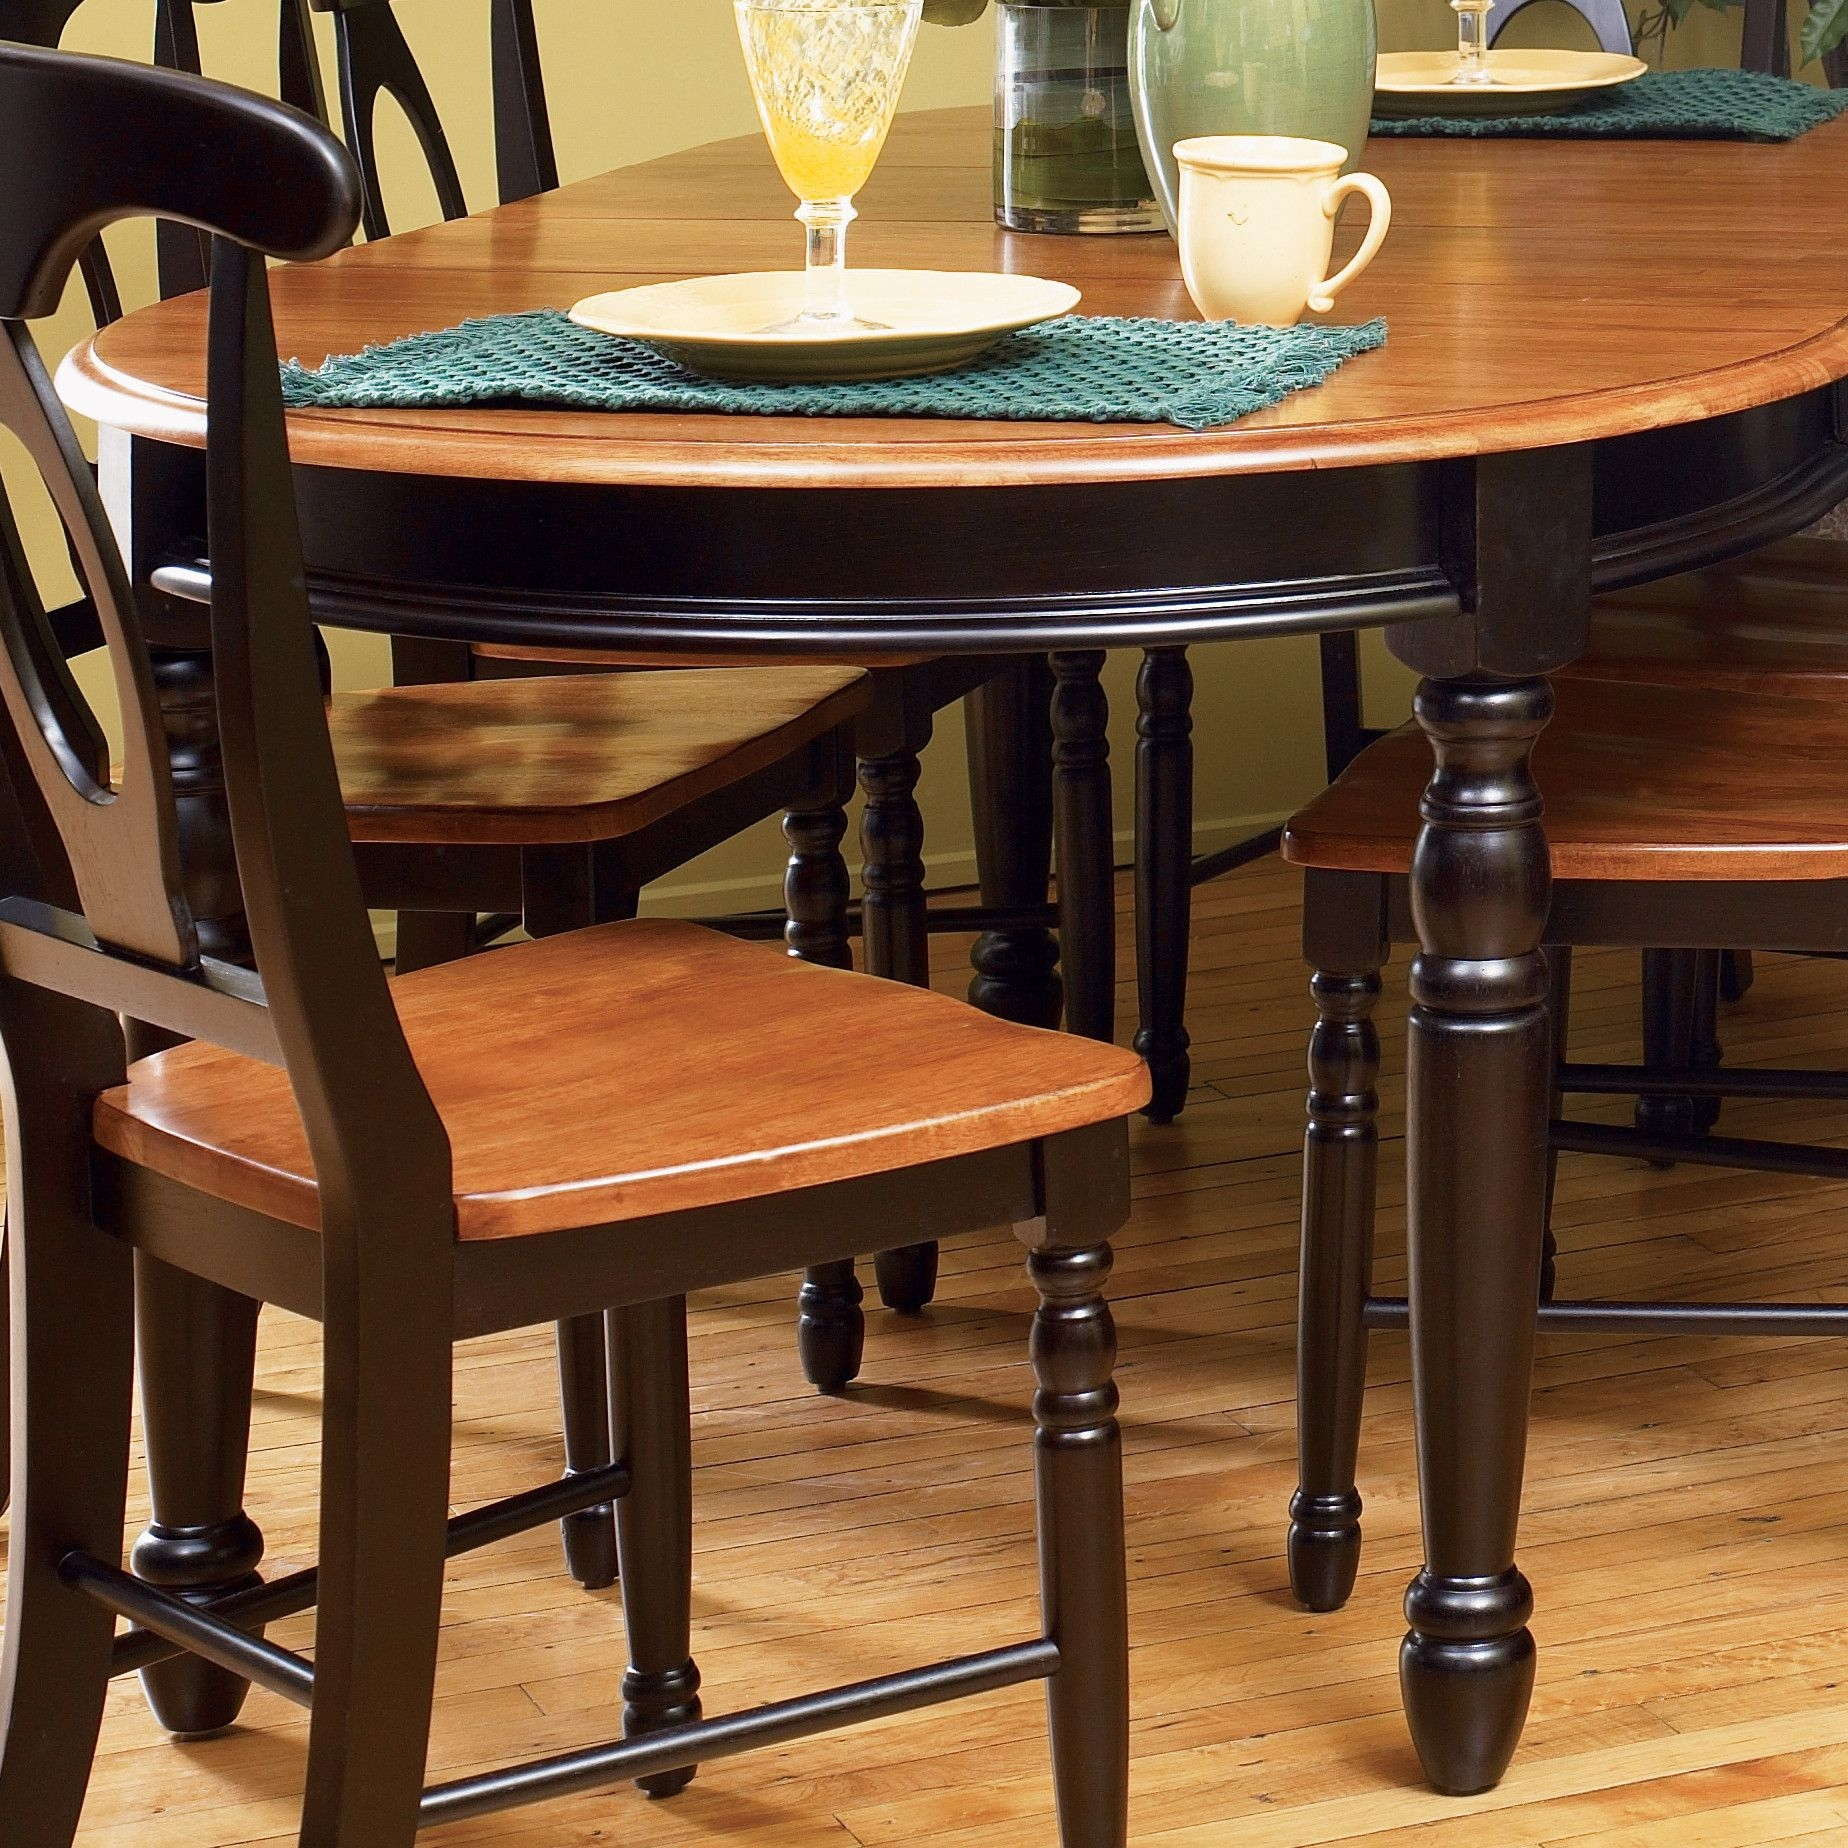 British isles 7 piece oval dining table set by a & Oval Dining Table For 6 - Foter